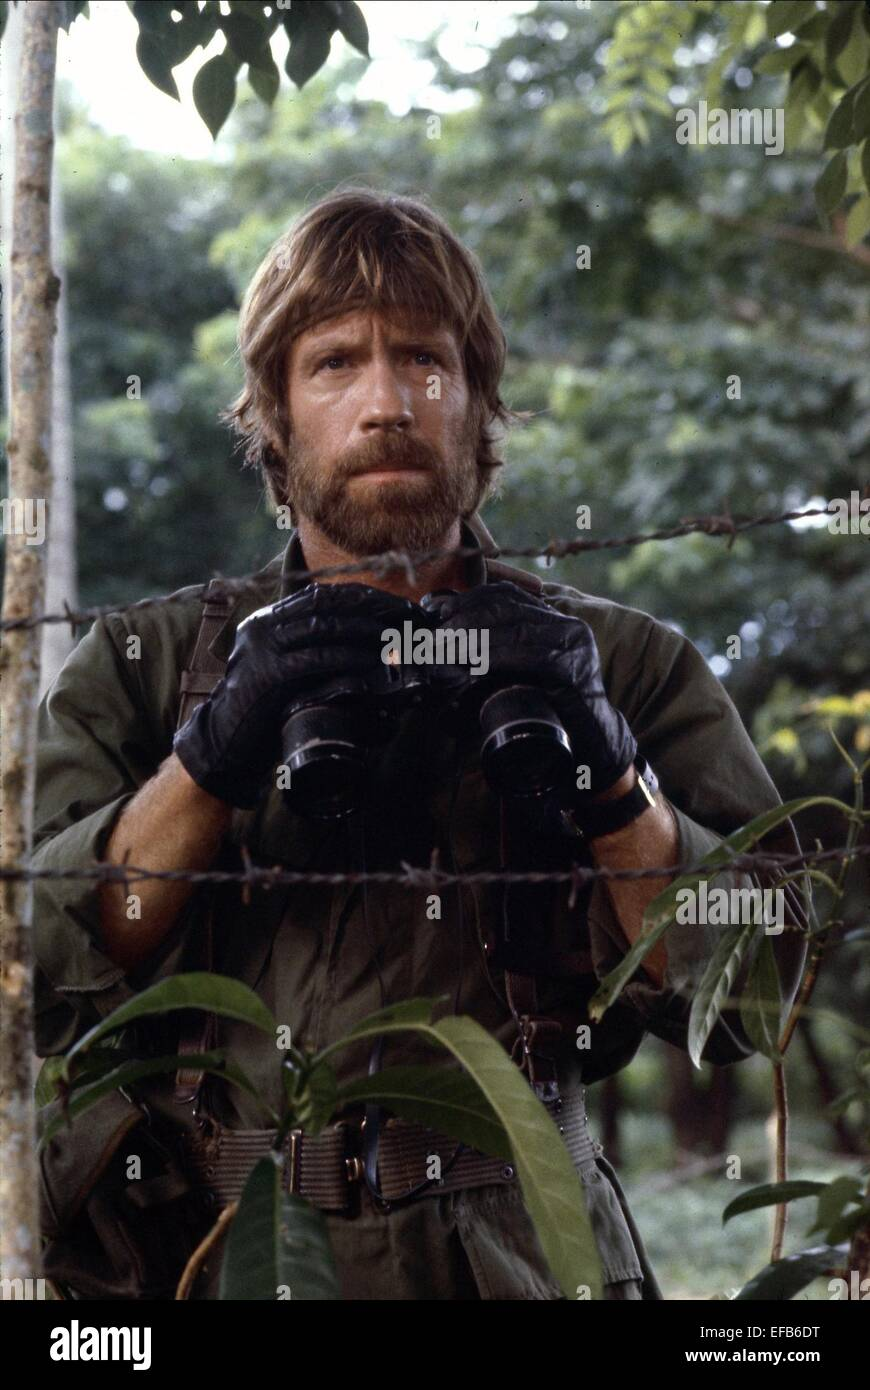 ++Missing in Action++ +Autogramm+ Chuck Norris